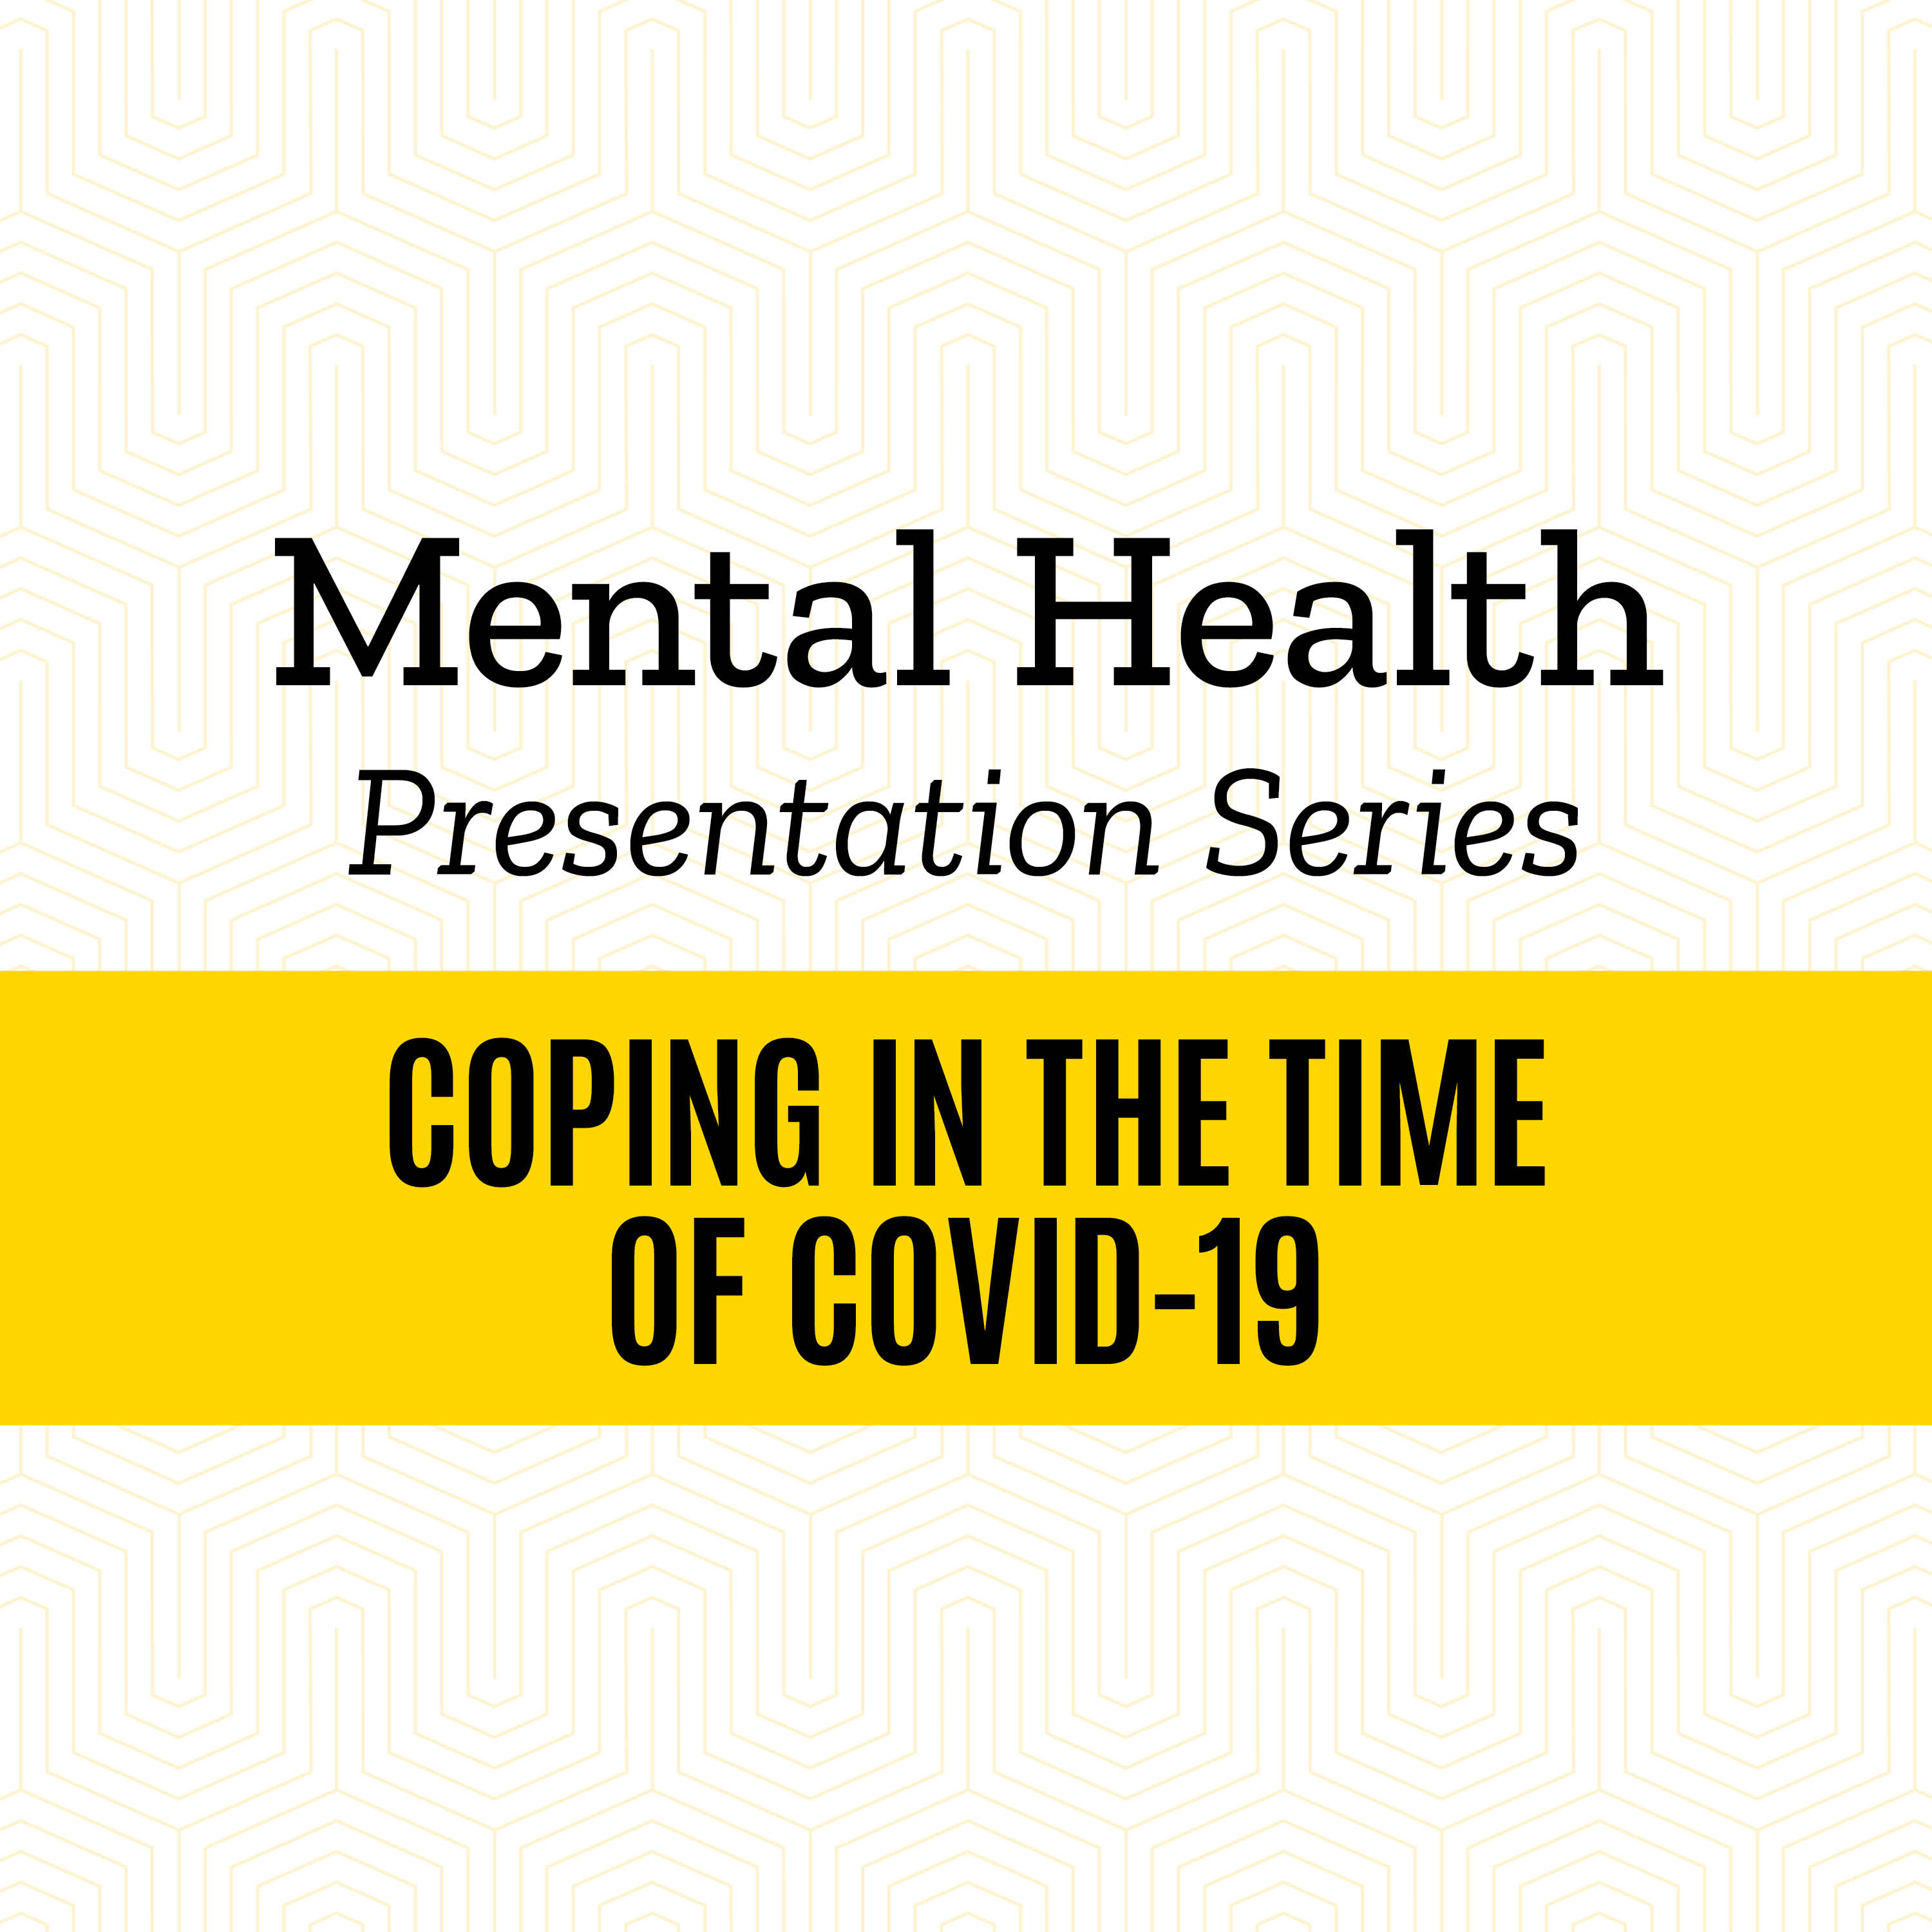 Mental Health Presentation Series: Coping in the time of COVID-19